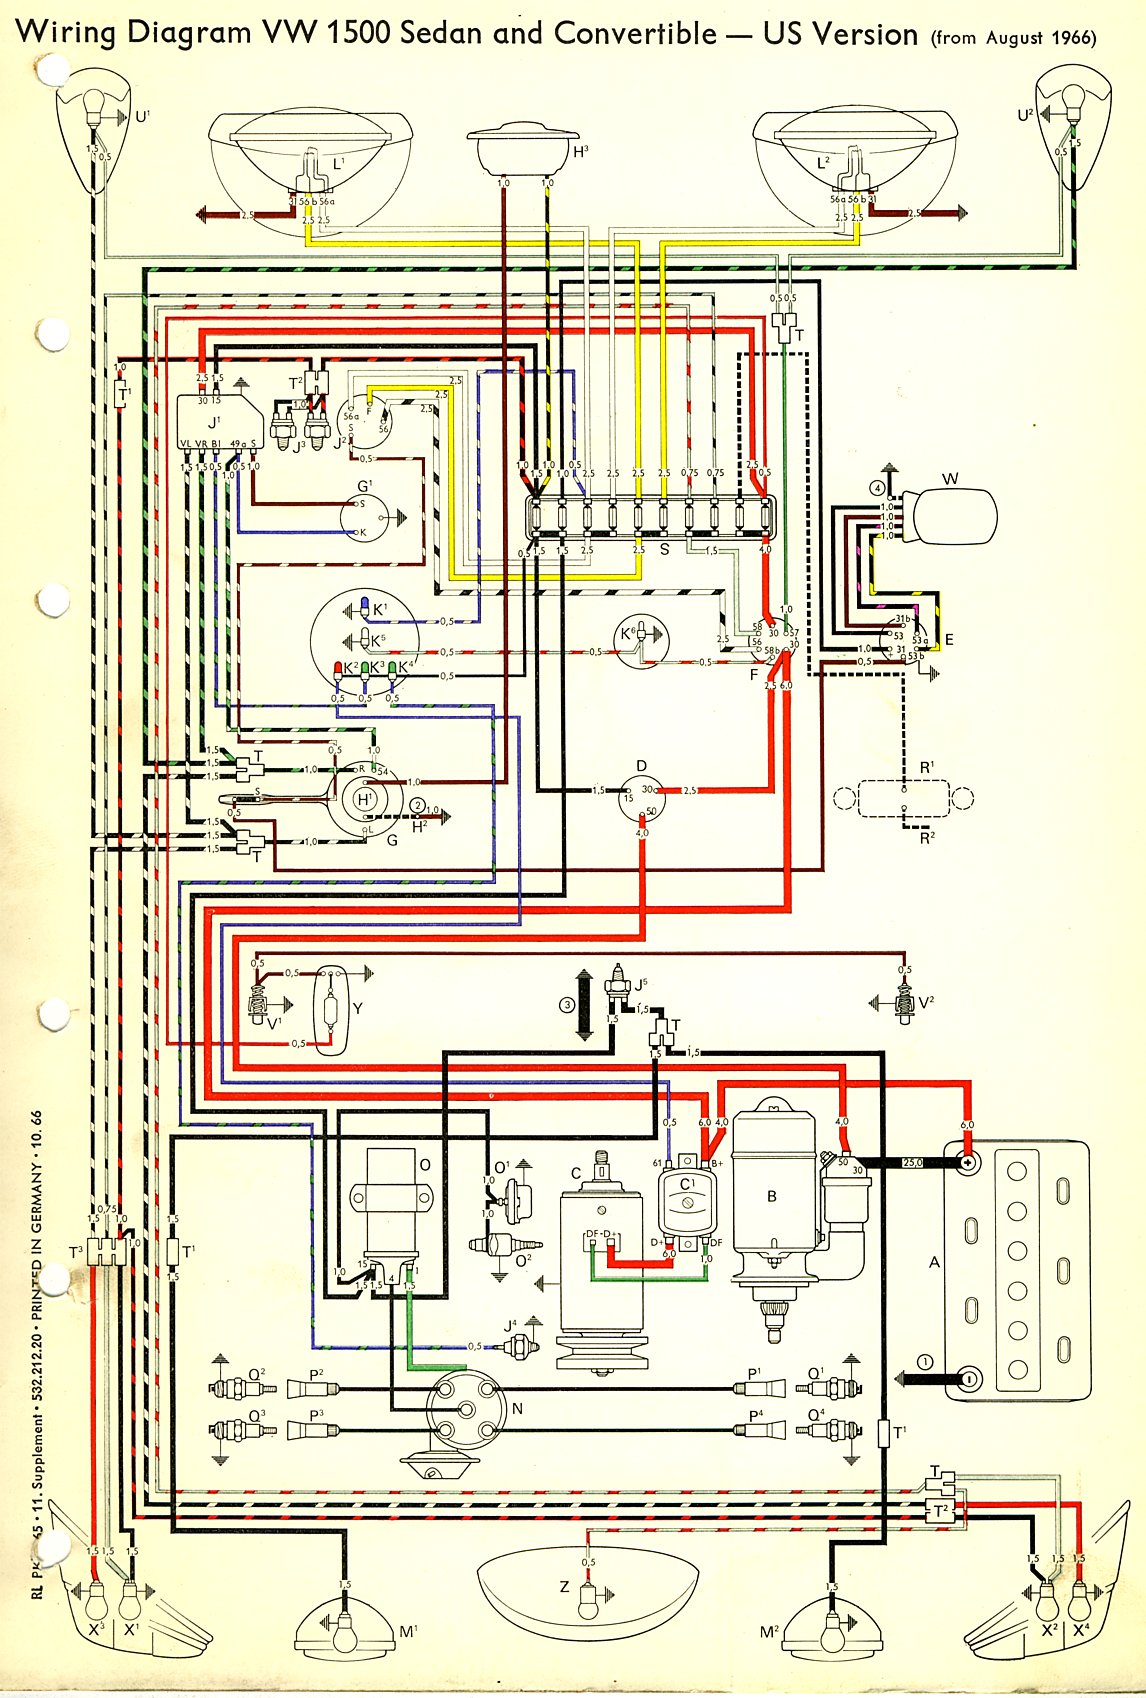 1967 vw beetle wiring harness free download wiring diagram schematicthesamba com type 1 wiring diagrams1967 vw beetle wiring harness free download wiring diagram schematic